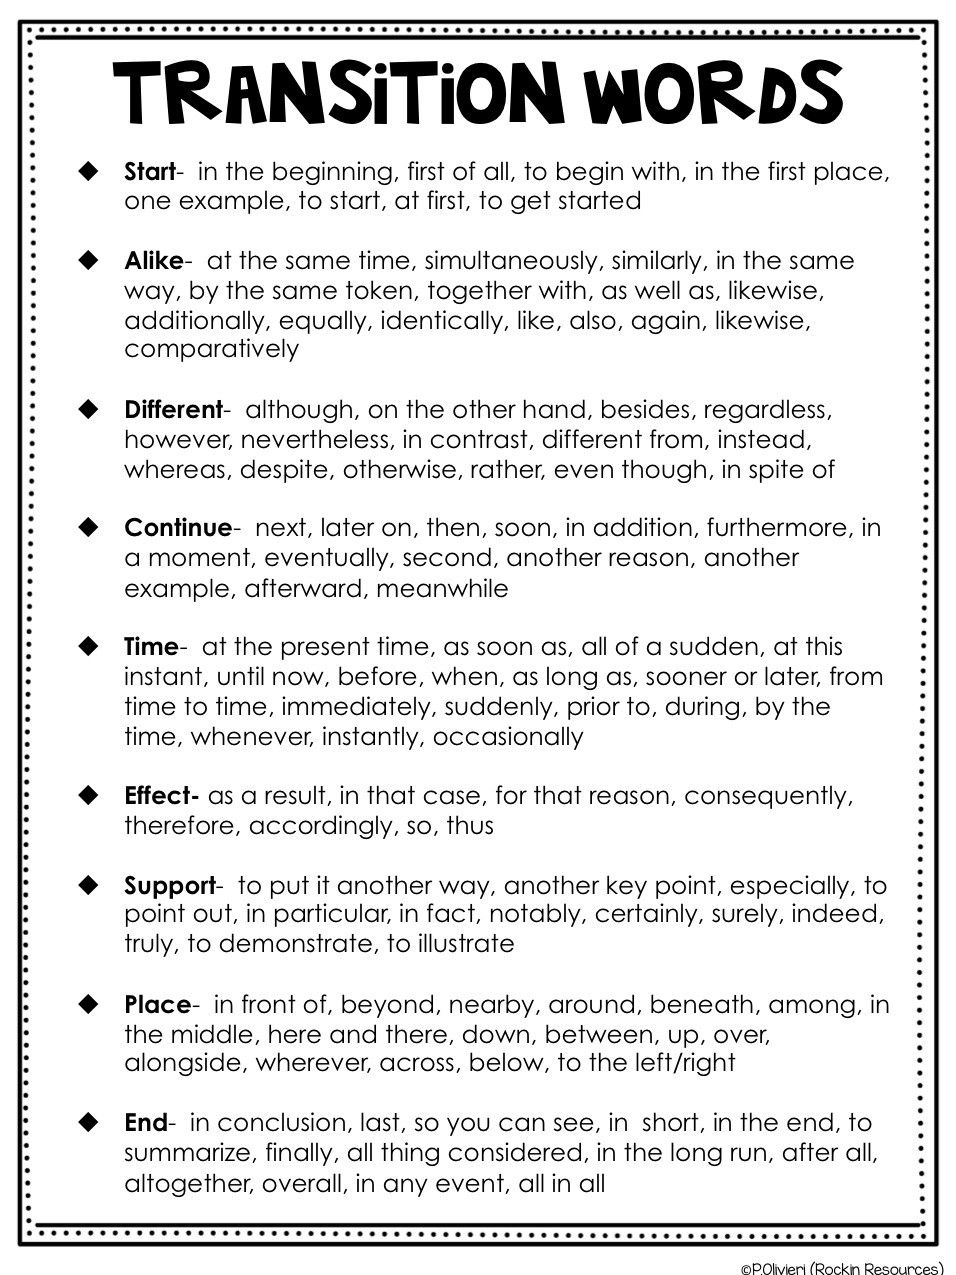 Transition Words Worksheets 4th Grade Writing Mini Lesson 6 Relevant Details In 2020 Transition Words Transition Words Worksheet Writing Mini Lessons